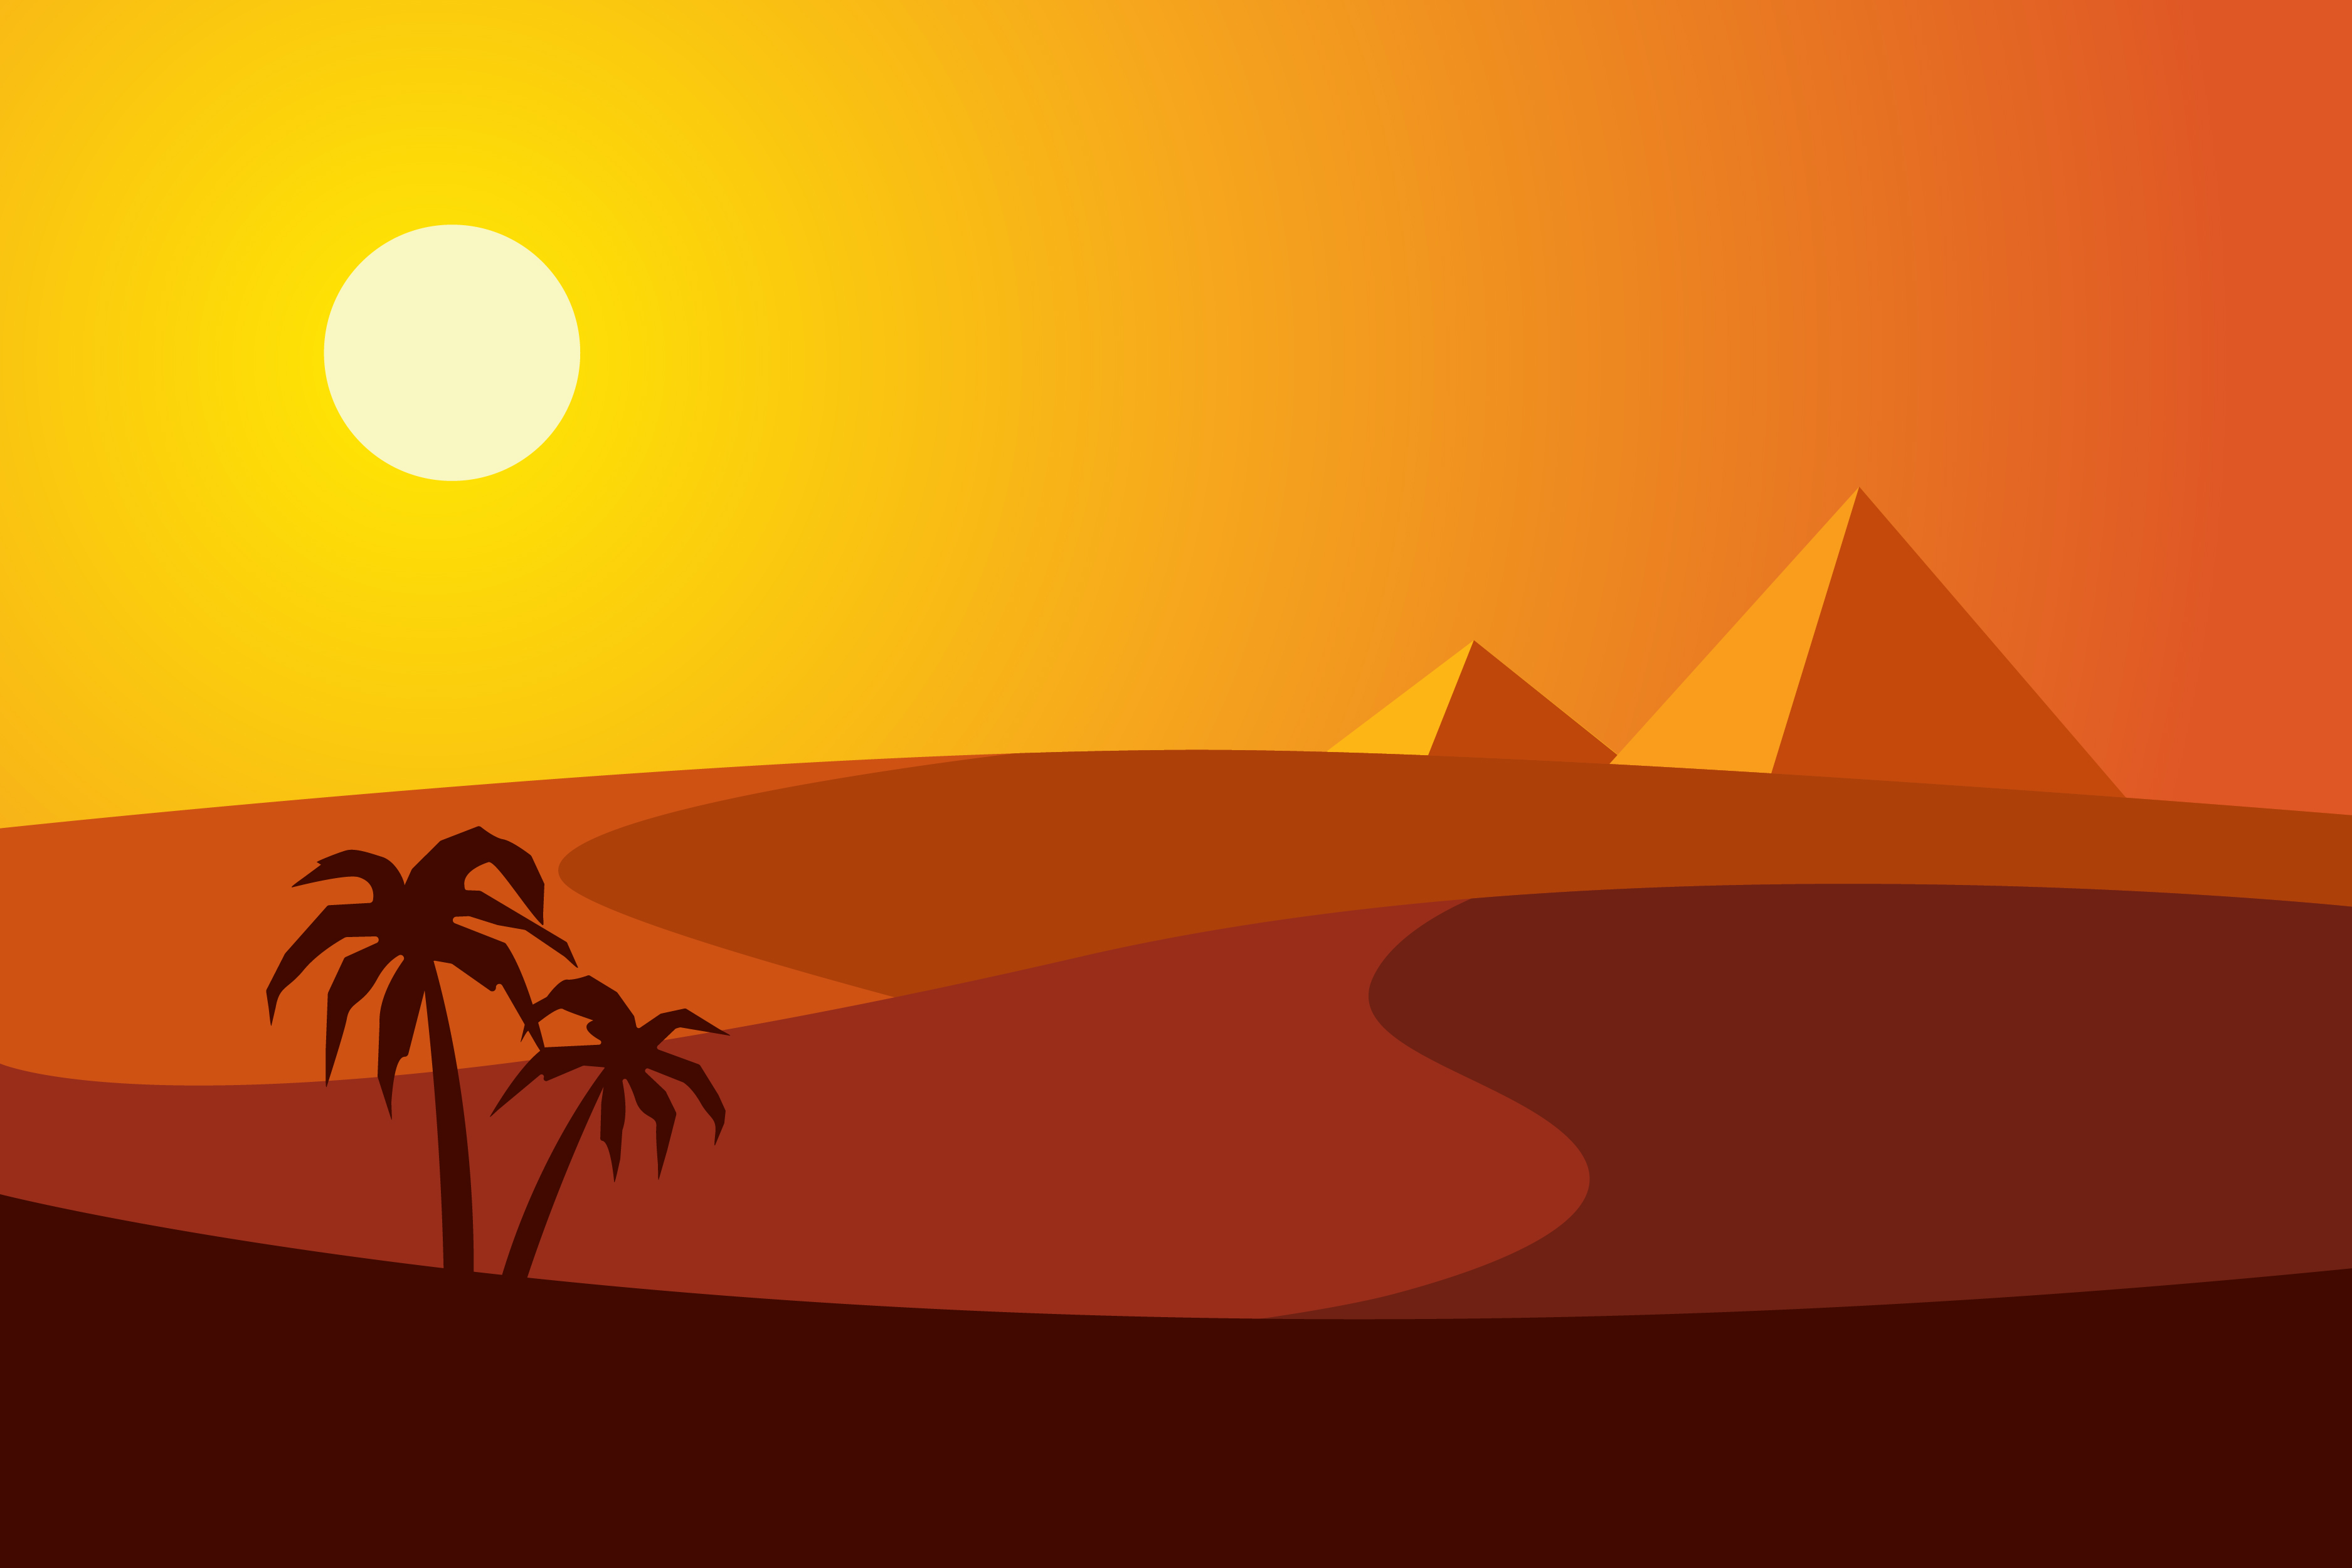 sunset in the desert with pyramids and two palm trees